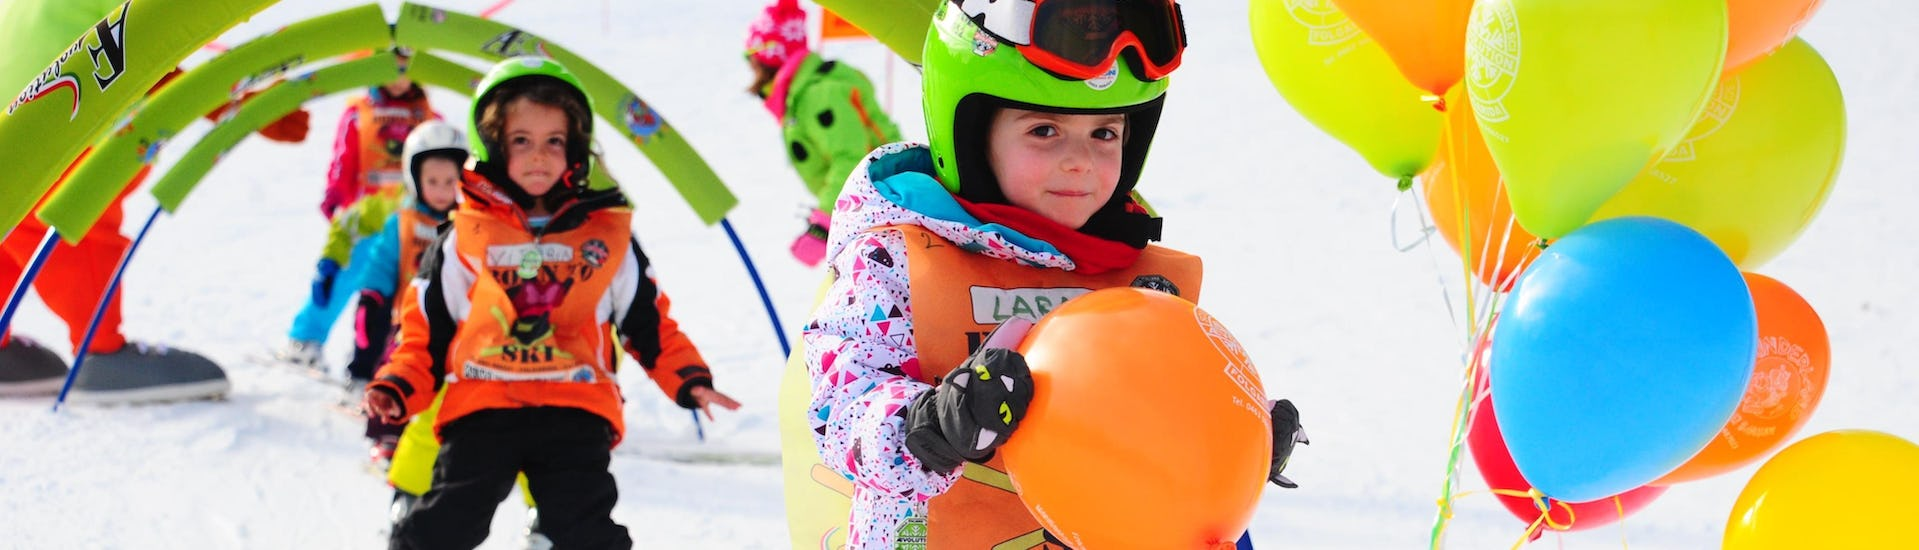 """The Kids Ski Lessons """"Full Day"""" (4-8 years) - Christmas of the AEvolution Folgarida Ski School are taking place in the school field; the child overcame the obstacles and deserved a balloon."""